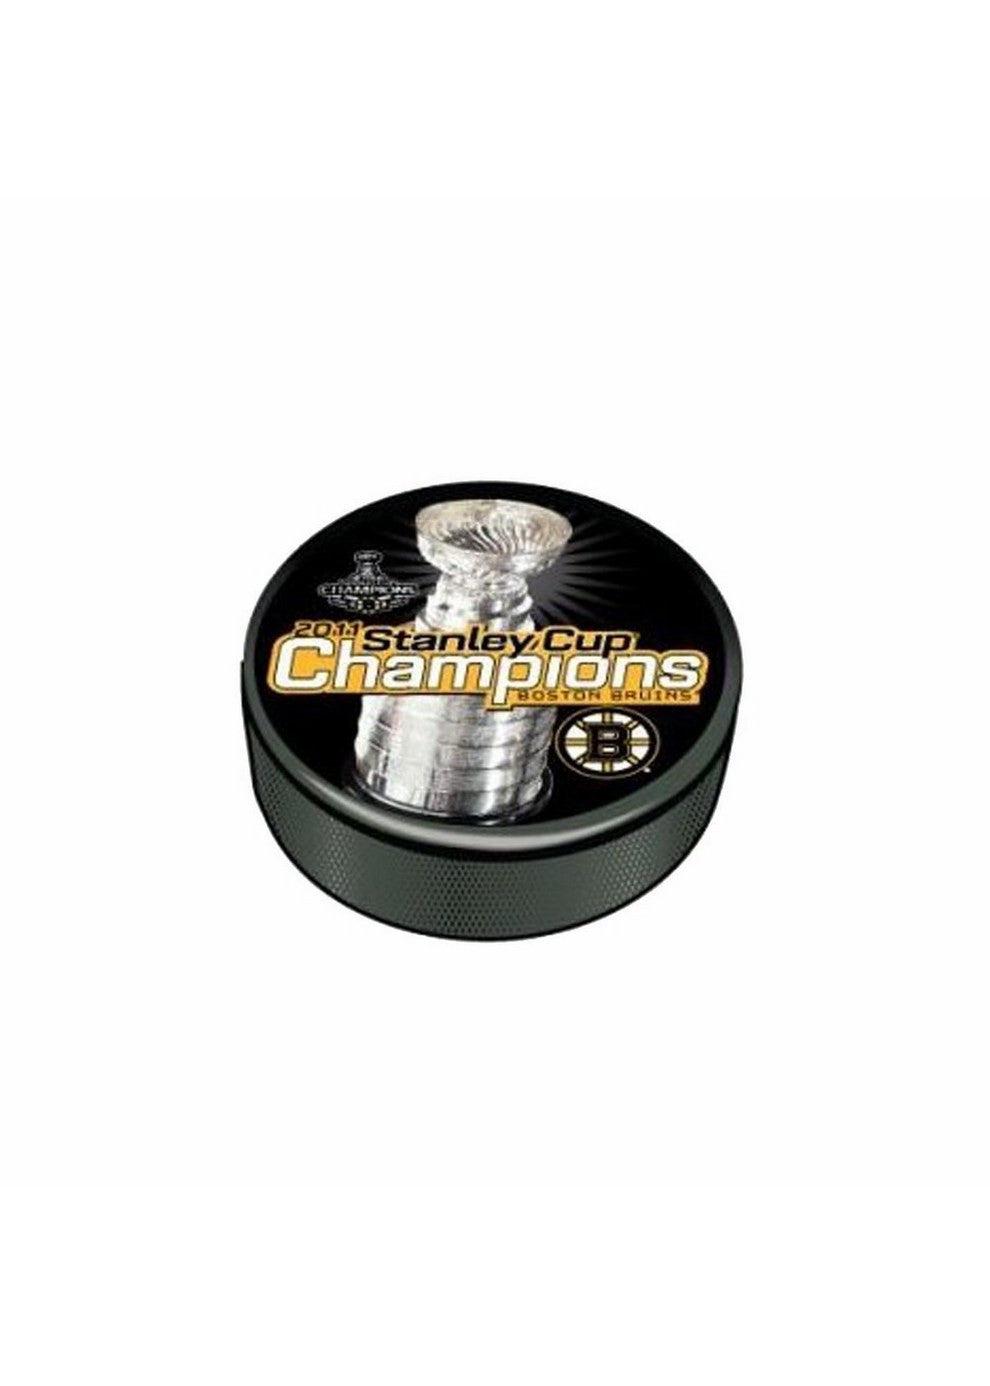 2011 Stanley Cup Champion Souvenir Puck Boston Bruins